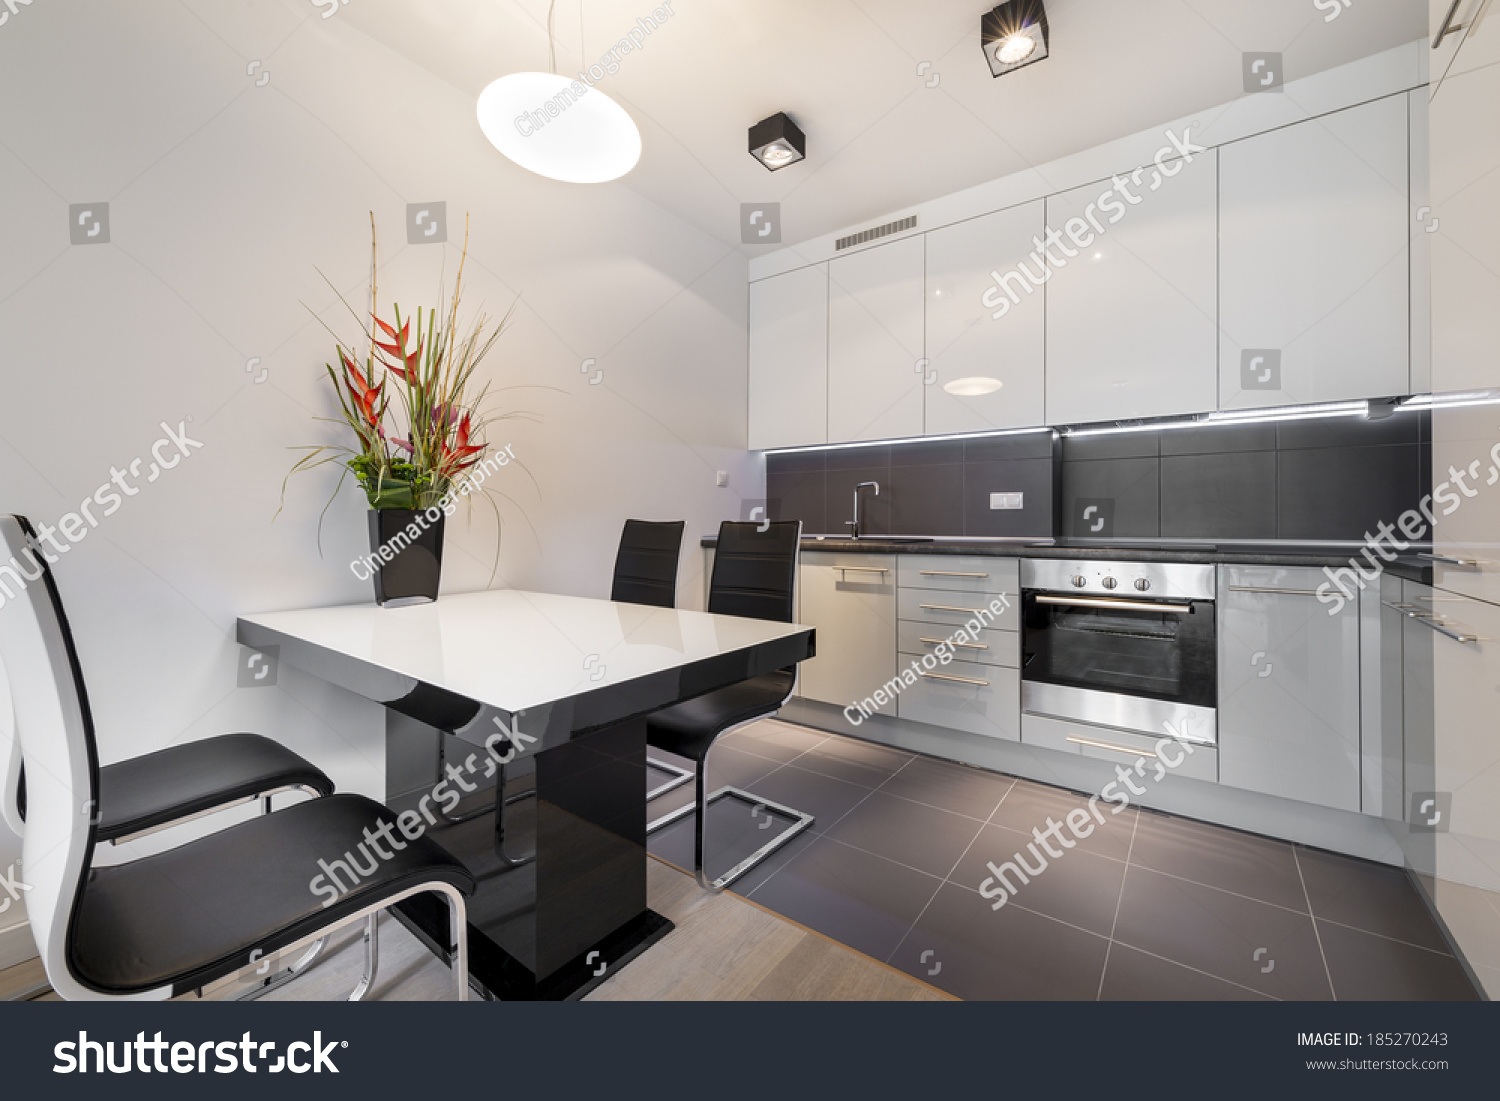 Modern kitchen with gray tile floor and white table Kitchen Gray Tile Floor White Stock Photo 185270243